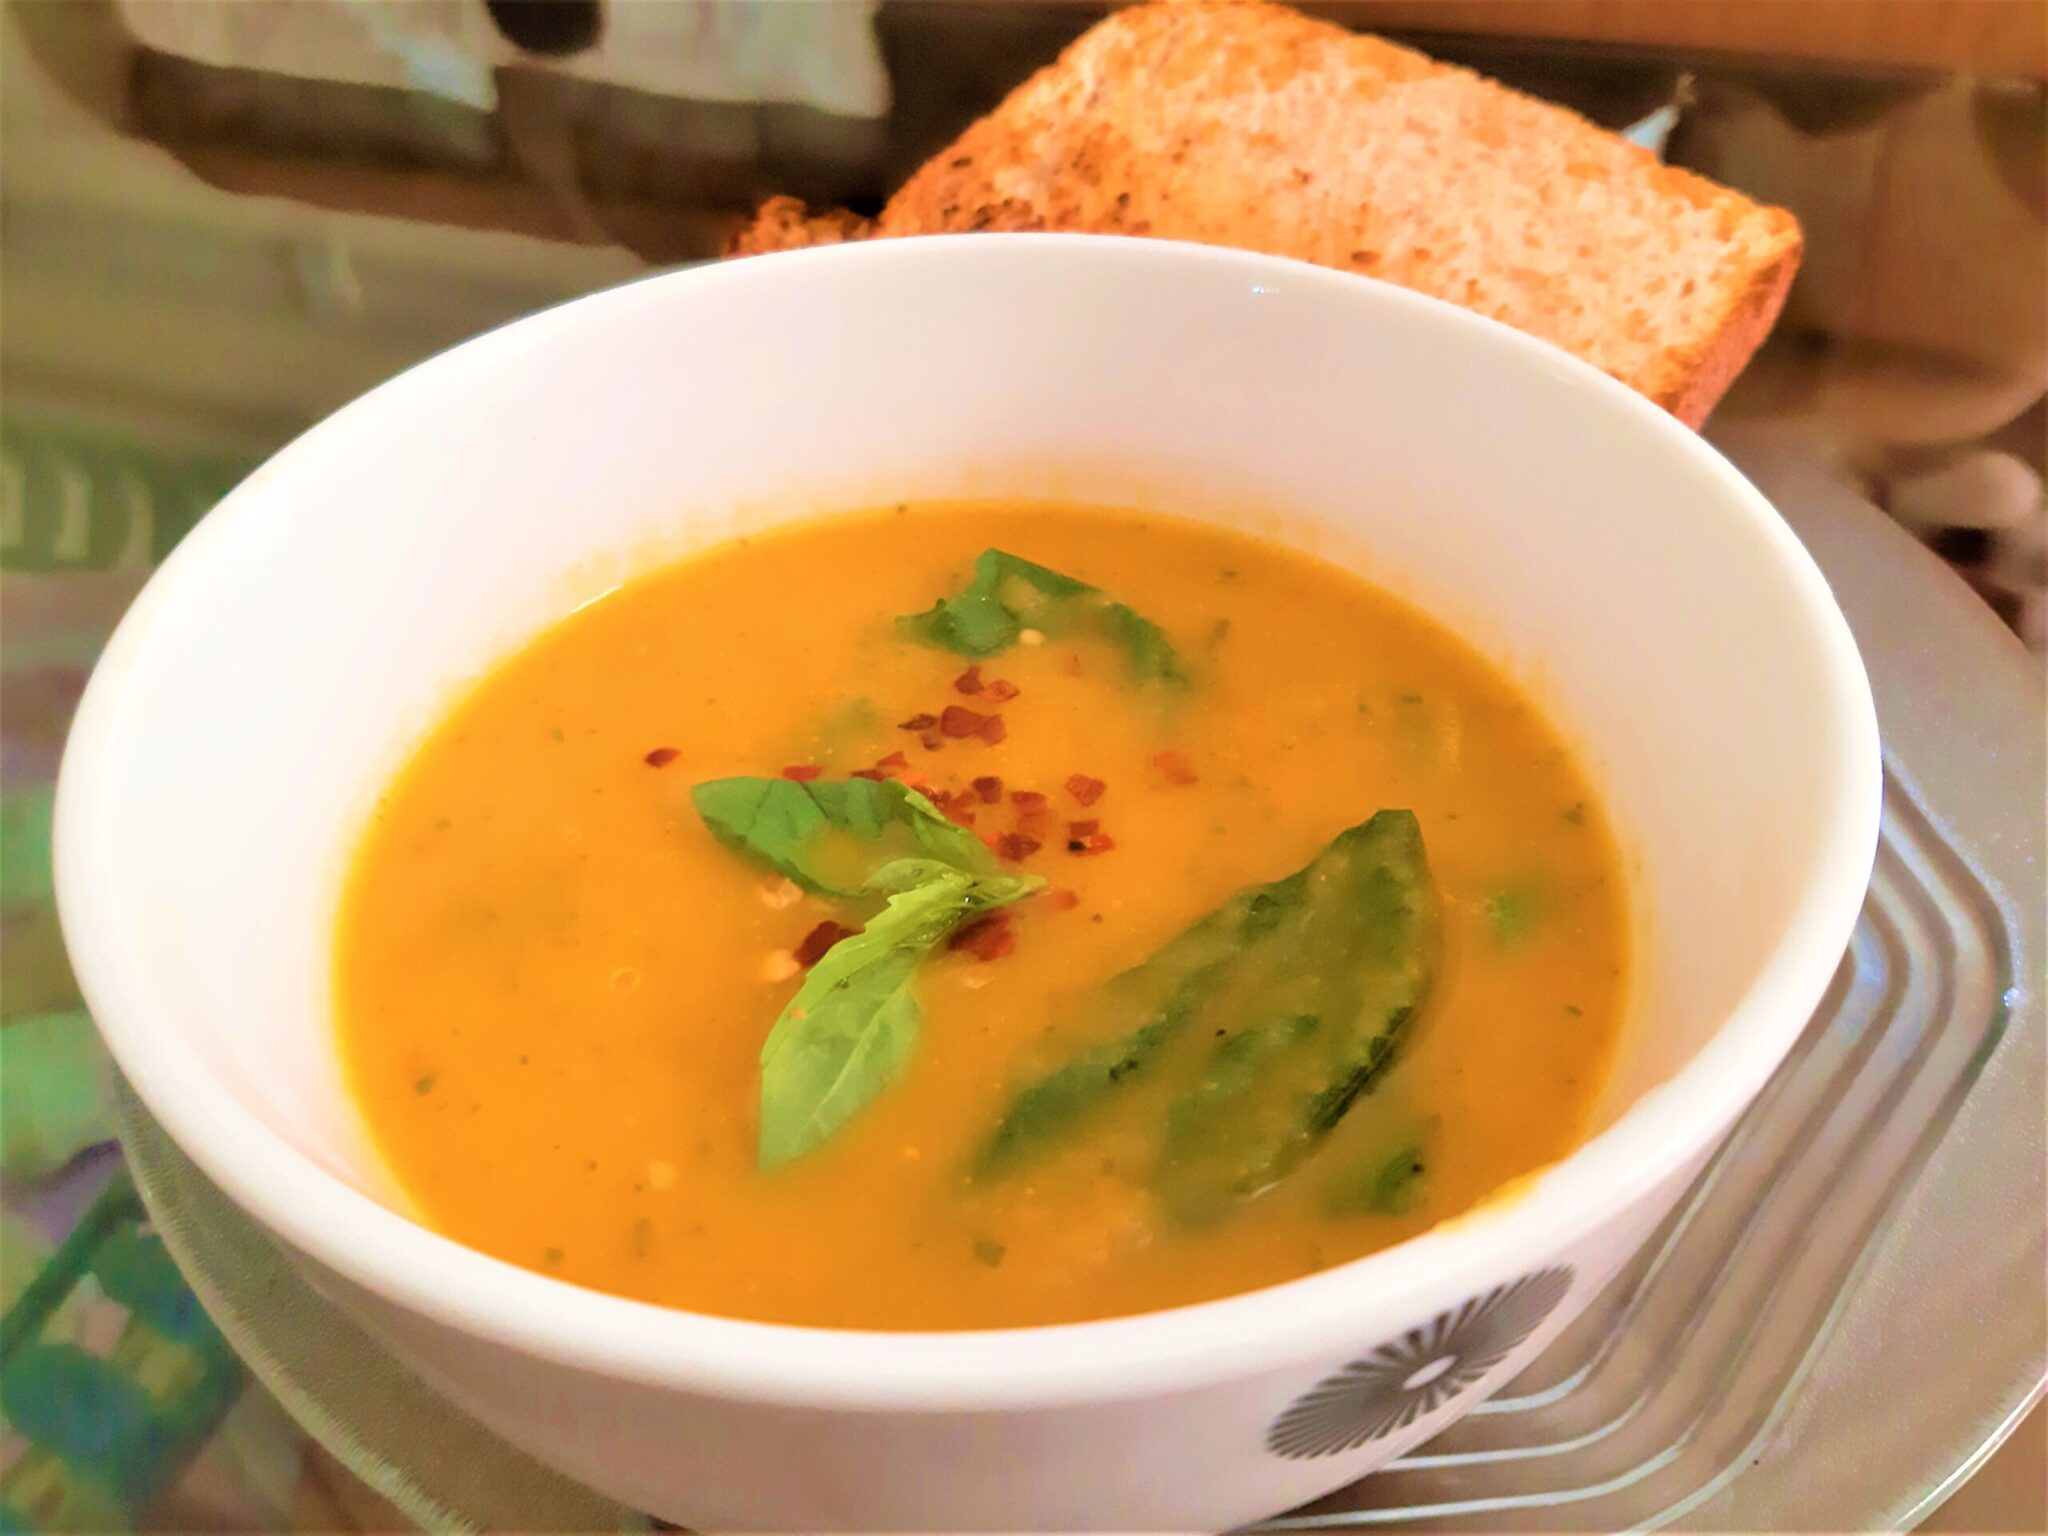 Vegan Creamy but Spicy Carrot, Tomato & Basil Soup